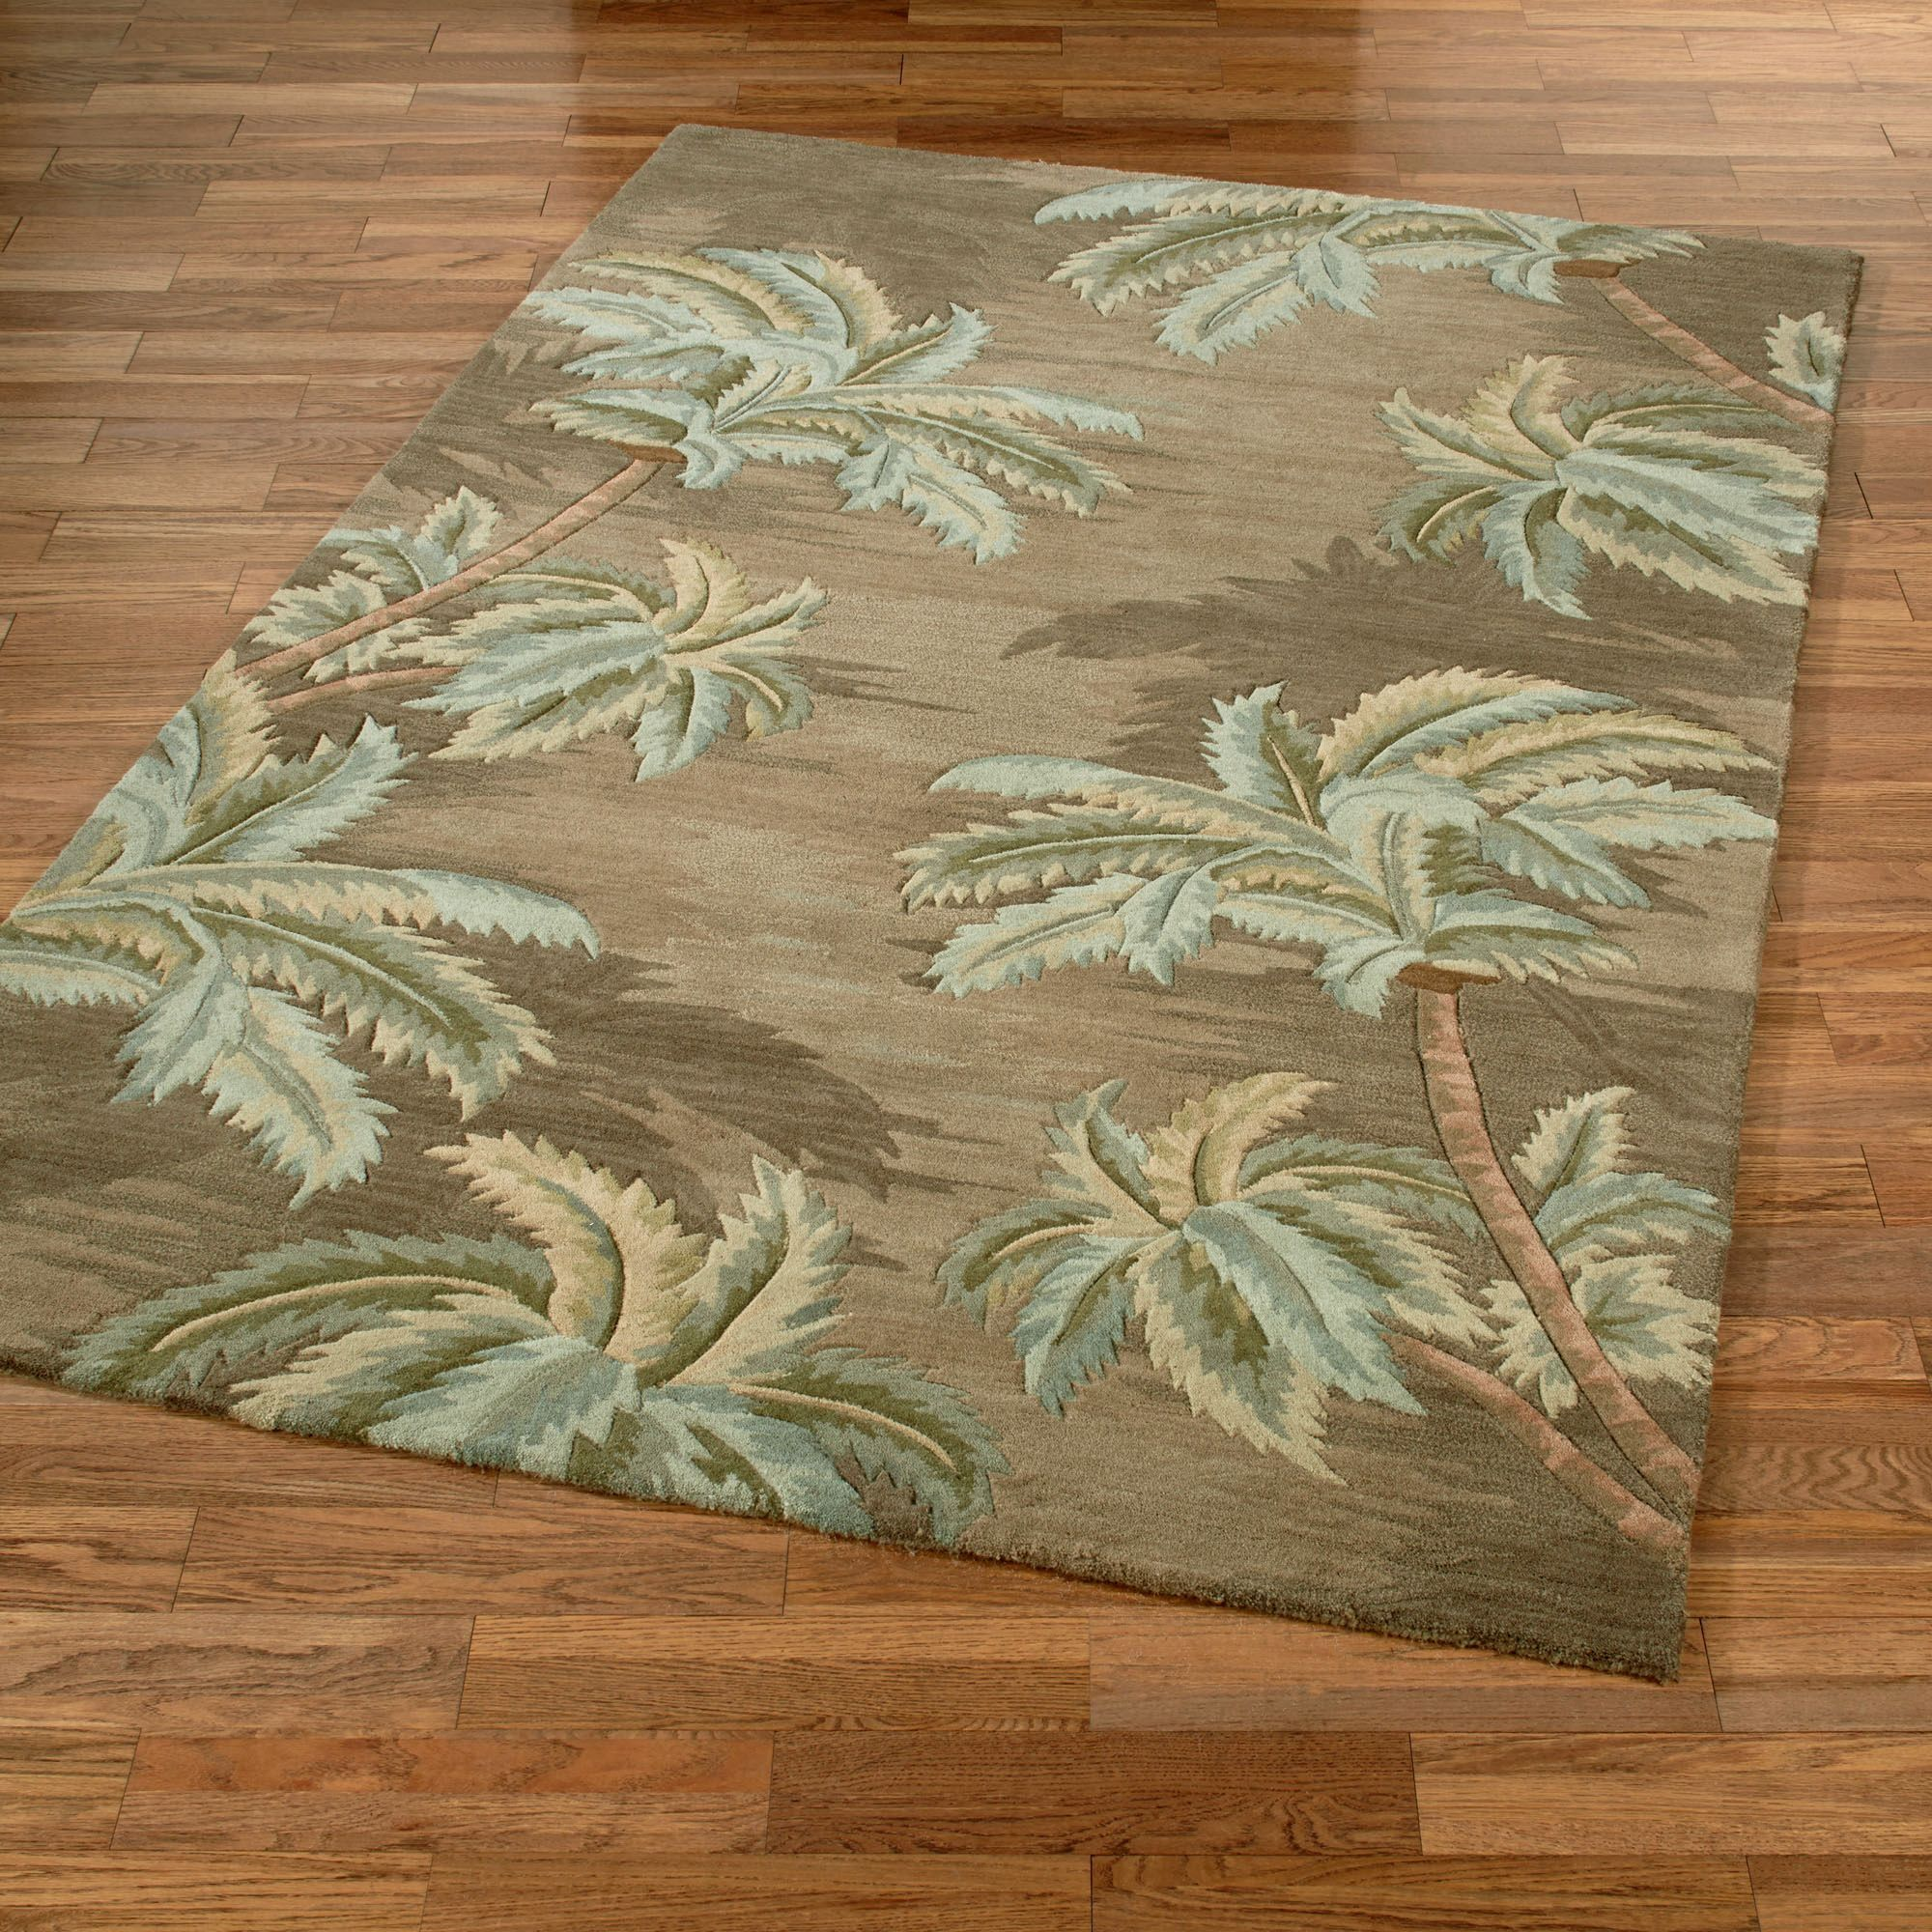 A Tropical Retreat Is Just Steps Away With The Lush Palm Trees Rugs Hand Tufted In China From Pure High Density Wool Thick Area Feature